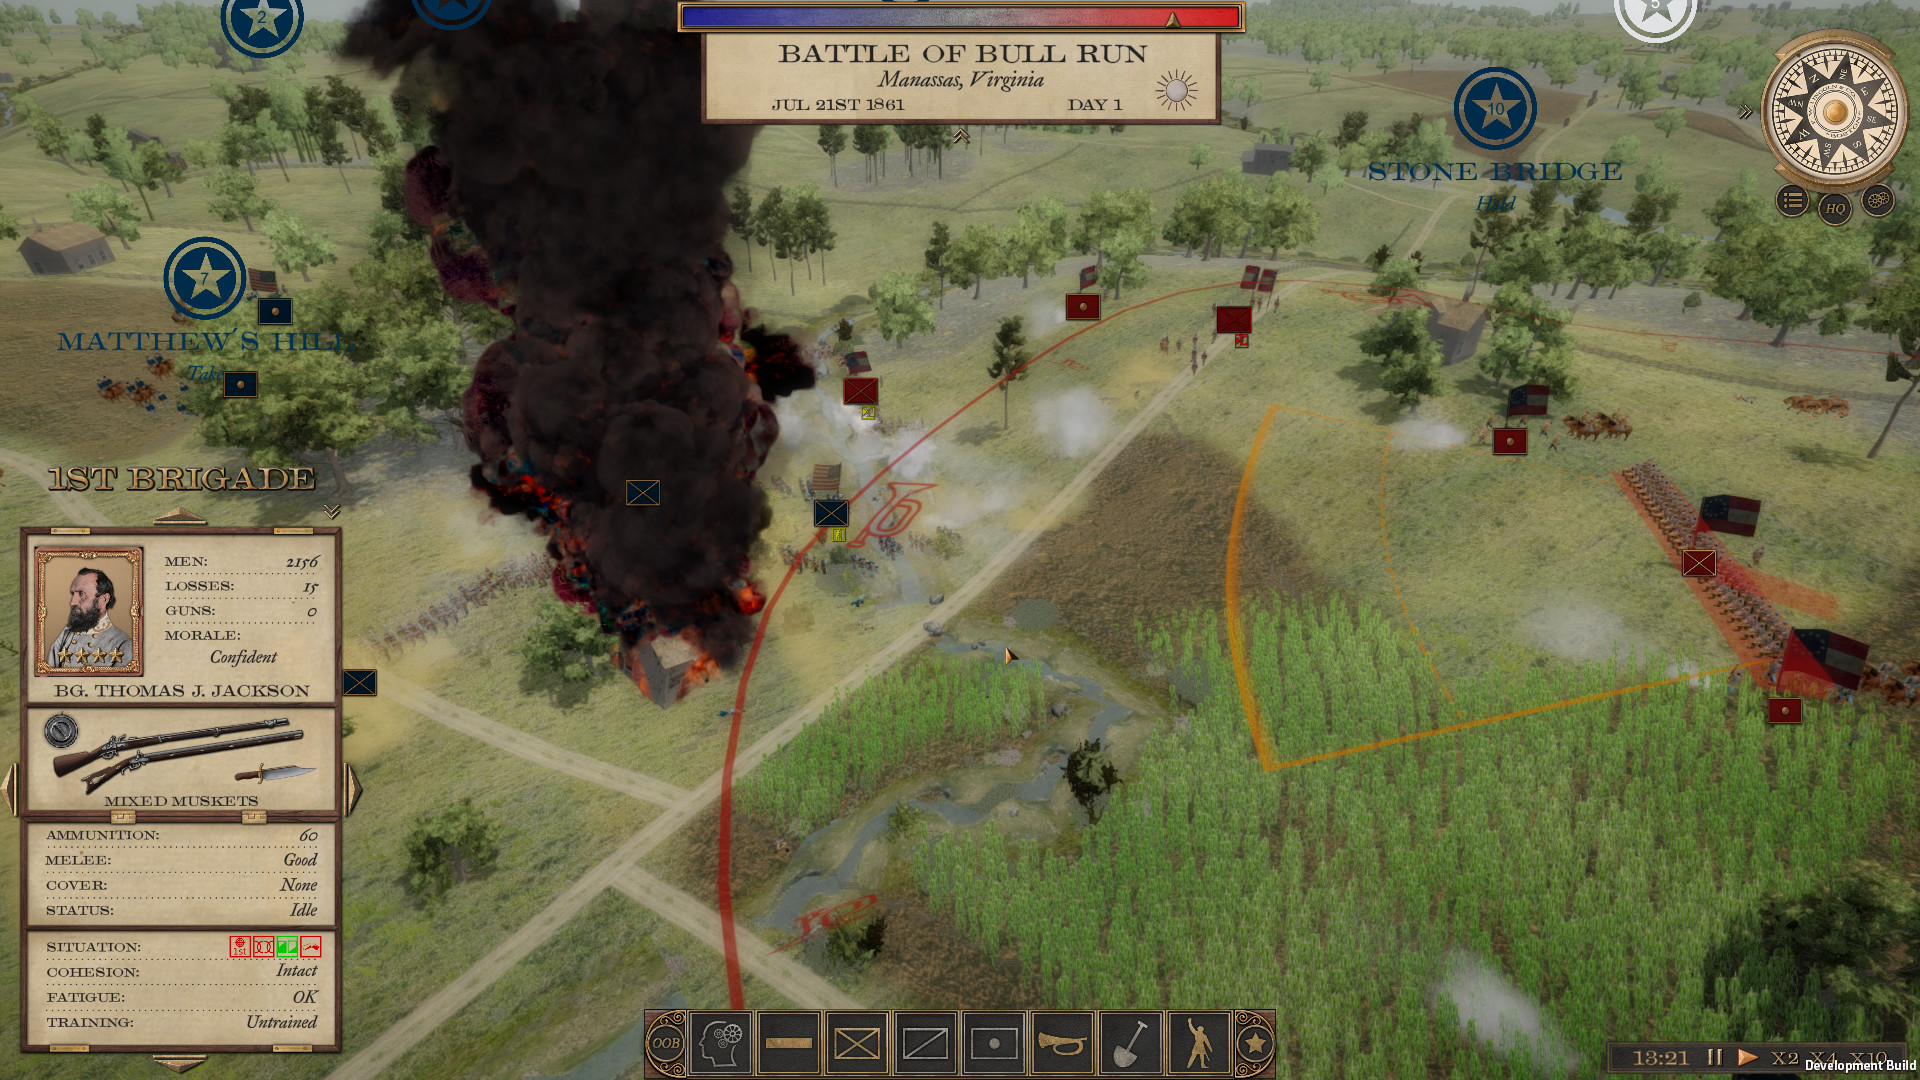 Grand Tactician: The Civil War (1861-1865) on Steam